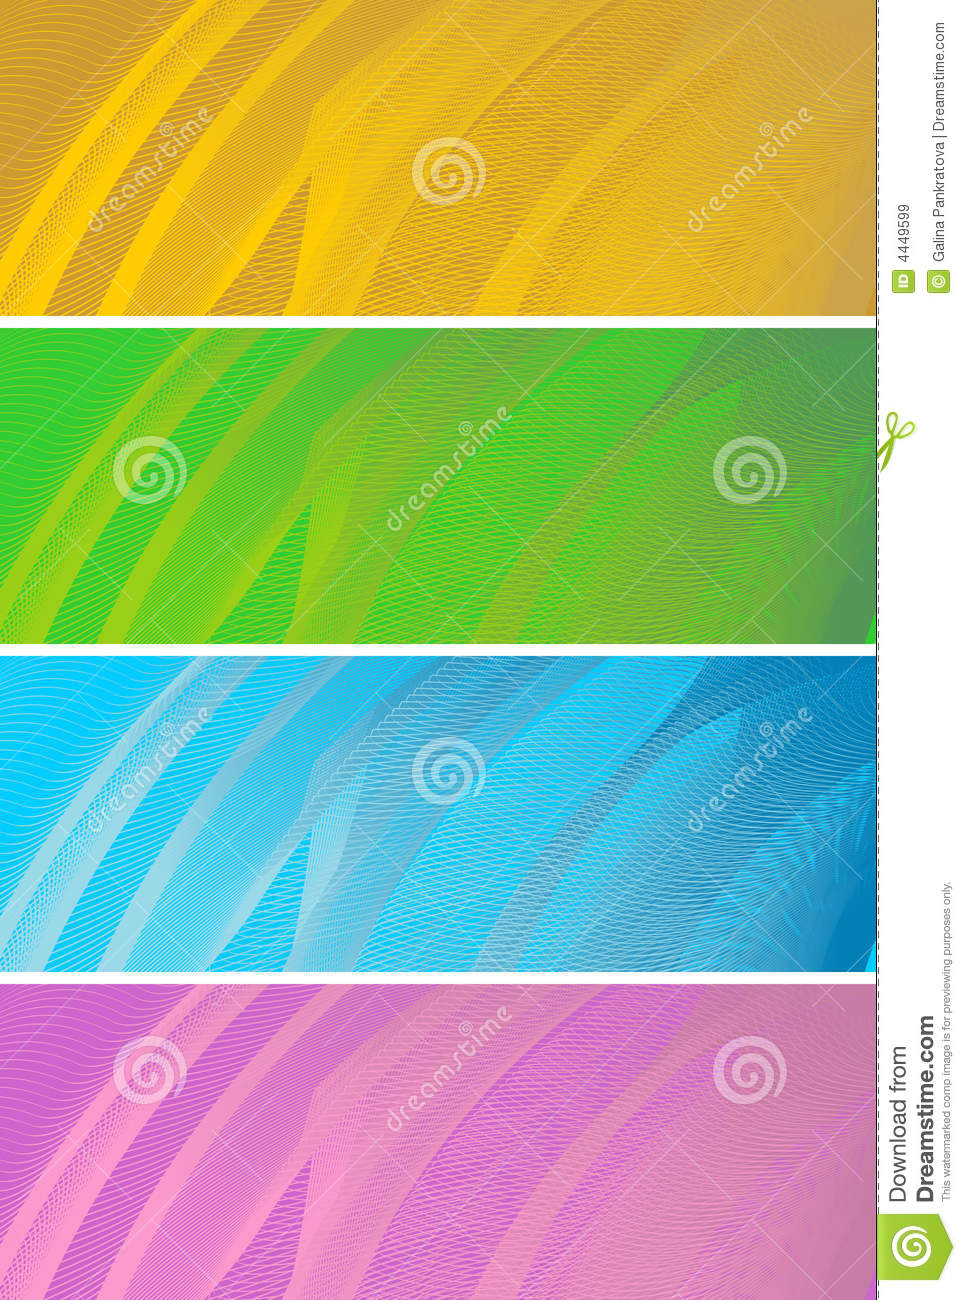 Business background, vector